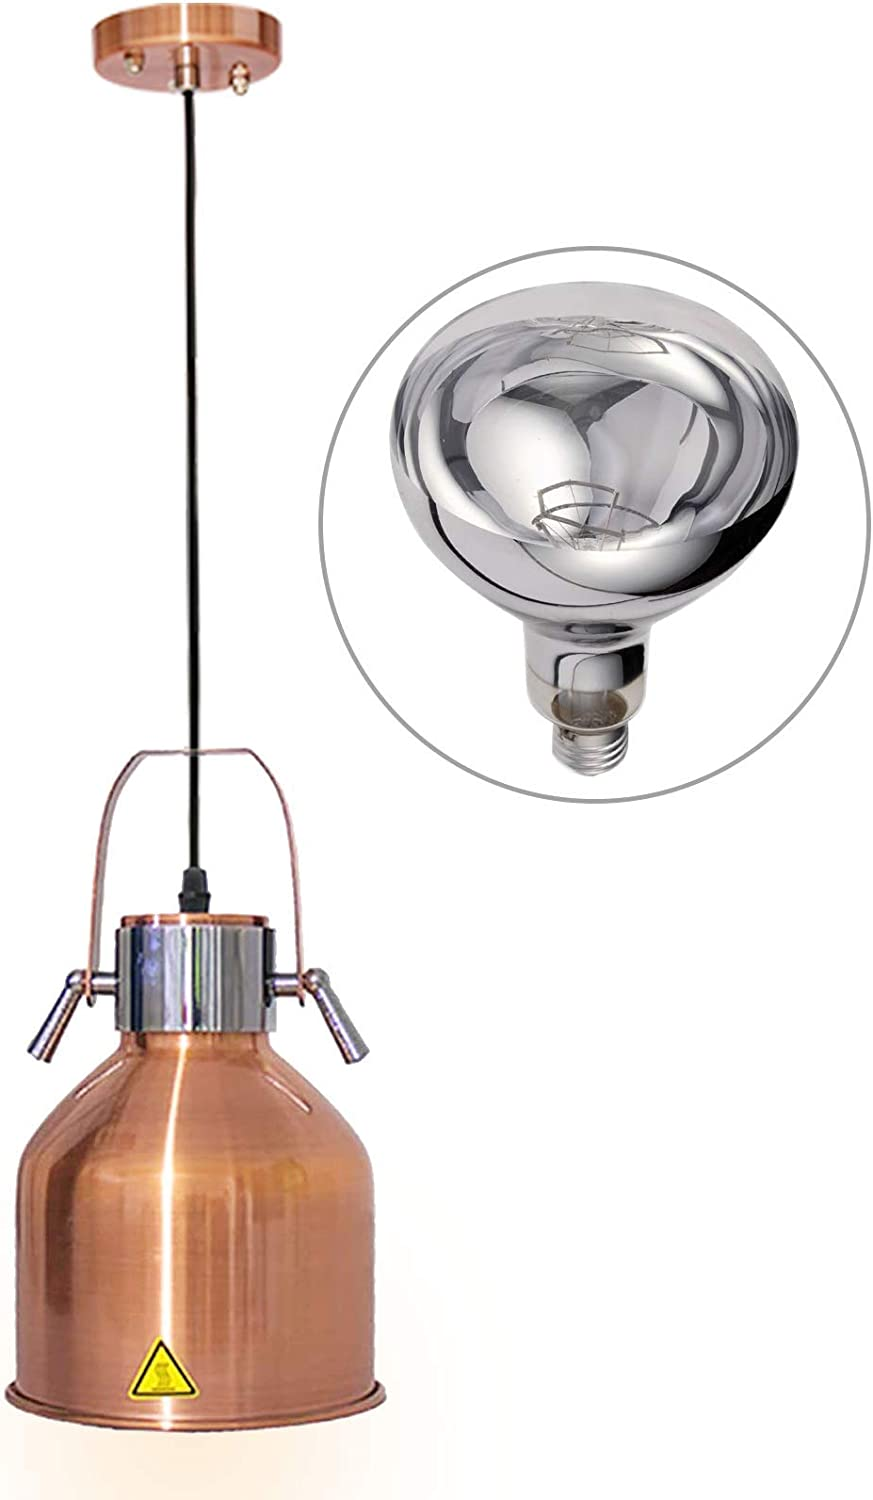 JIAWANSHUN 175mm Food Heat Lamp Food Warmer Lamp Food Heating Pendant Lamp Food Insulation Lamp 110V